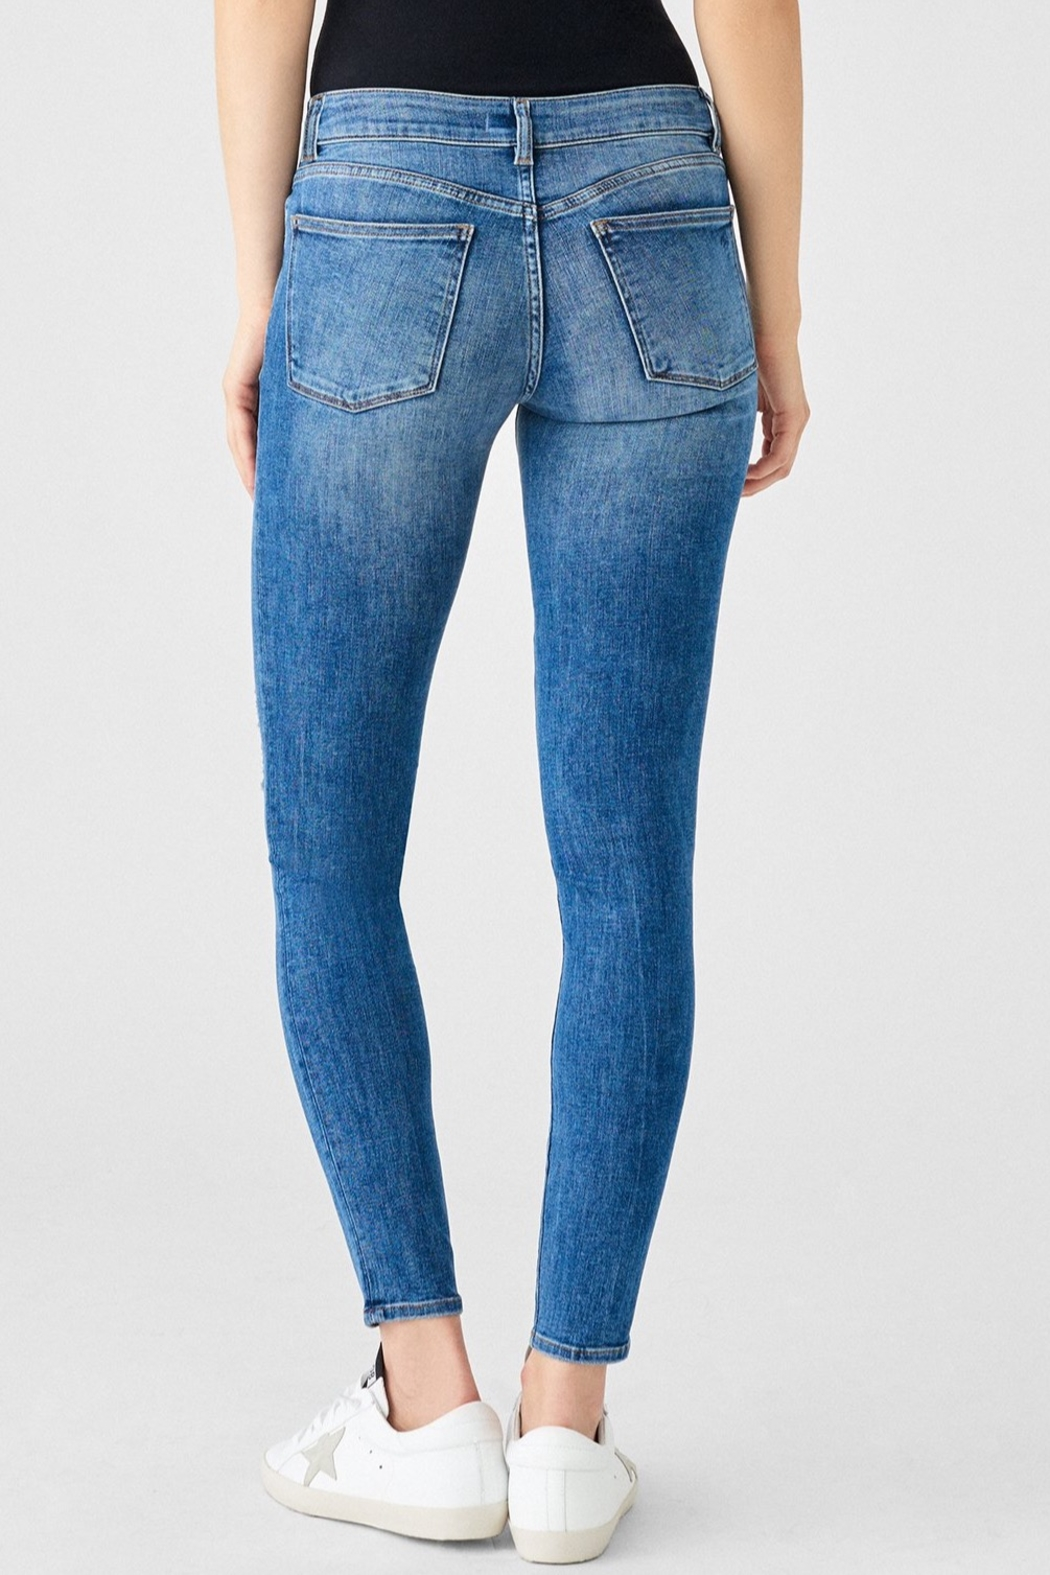 DL1961 Florence Mid Rise Skinny in Full Richland - Back Cropped Image